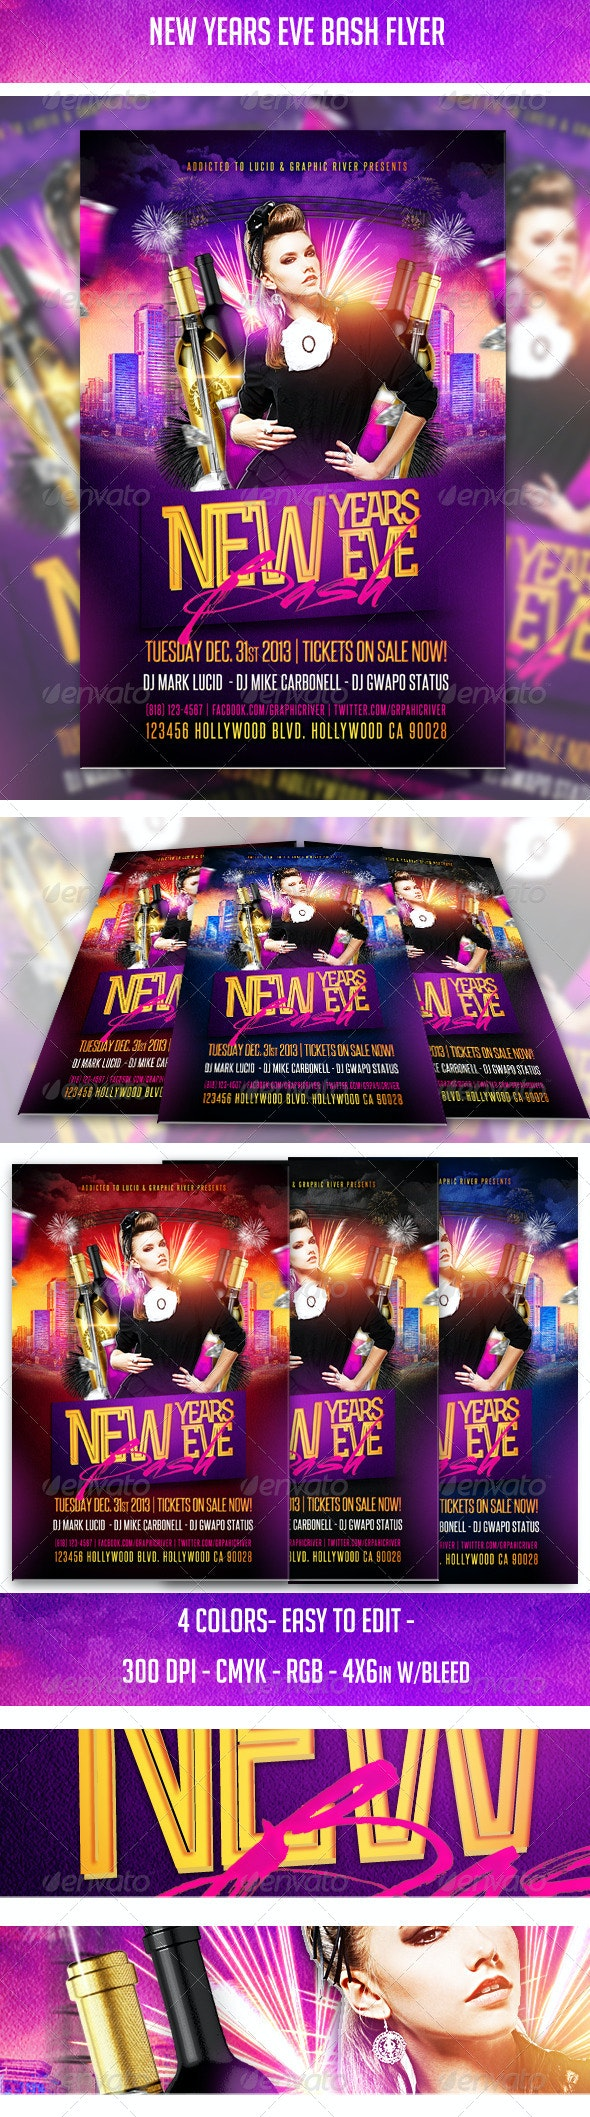 New Years Eve Bash Flyer - Clubs & Parties Events